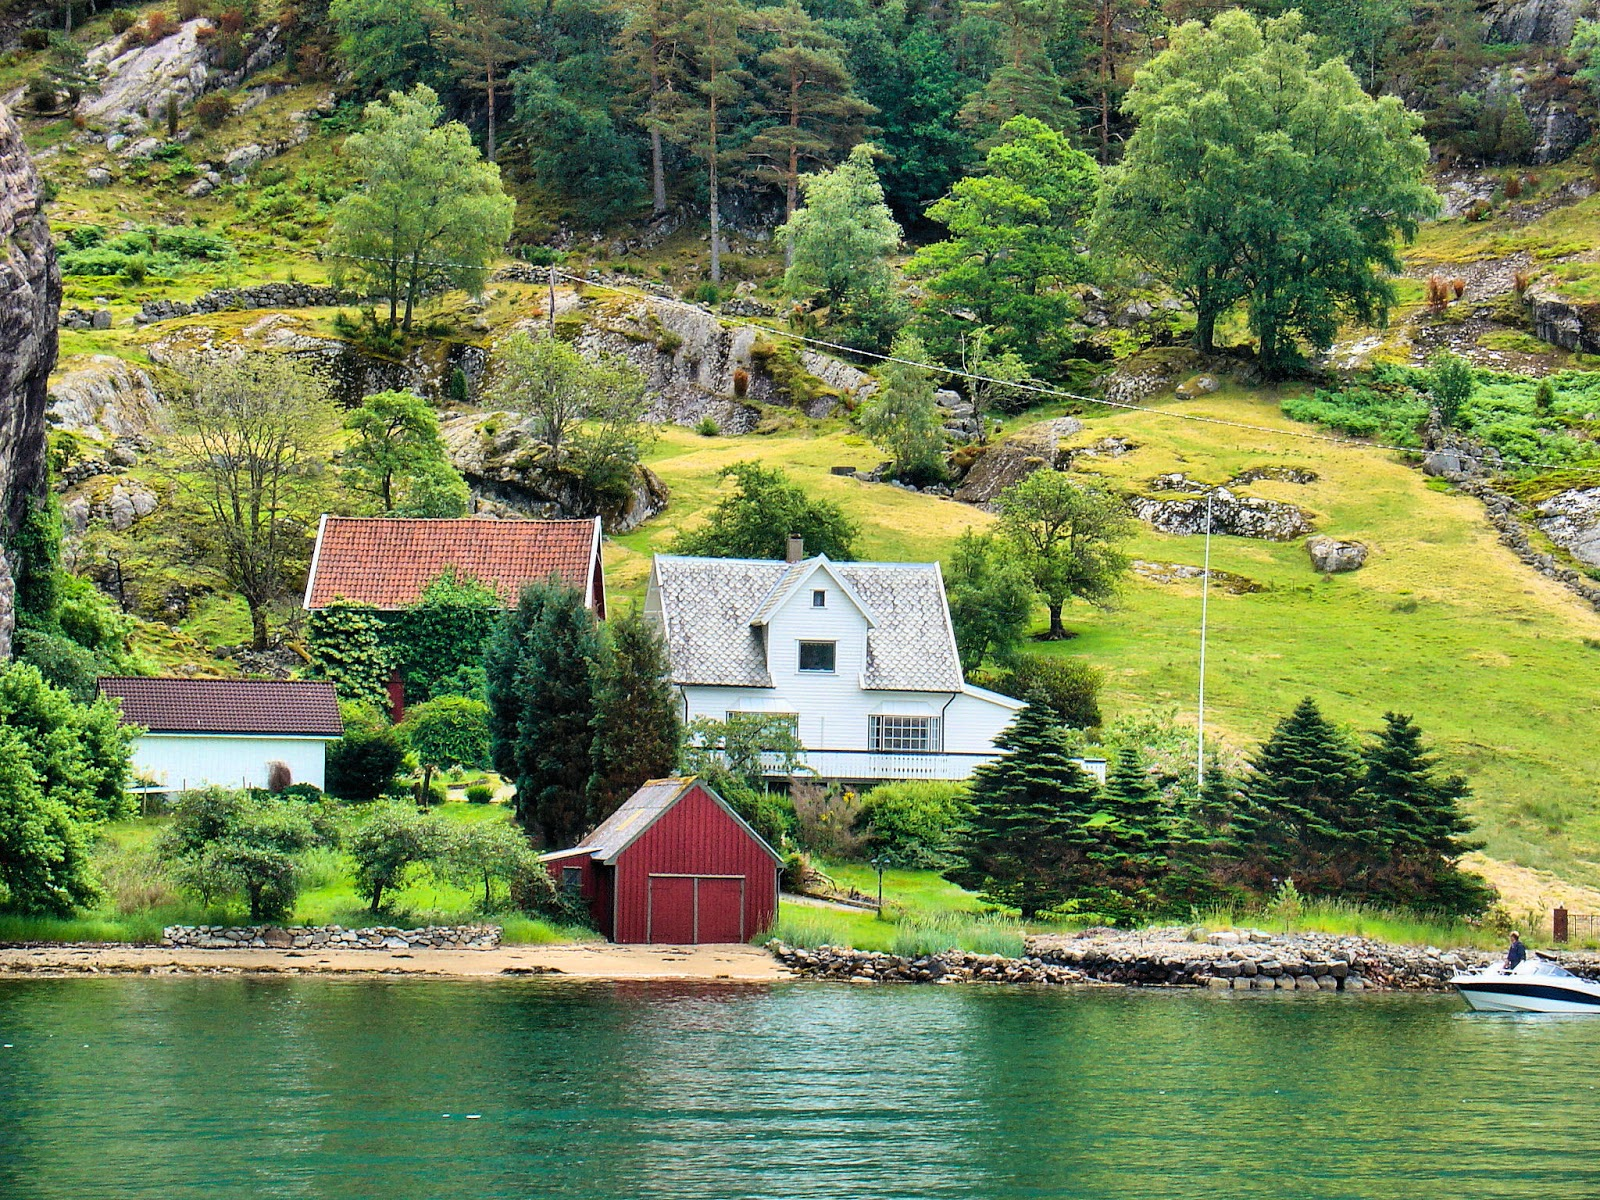 Picturesque beauty along the Lysefjord.